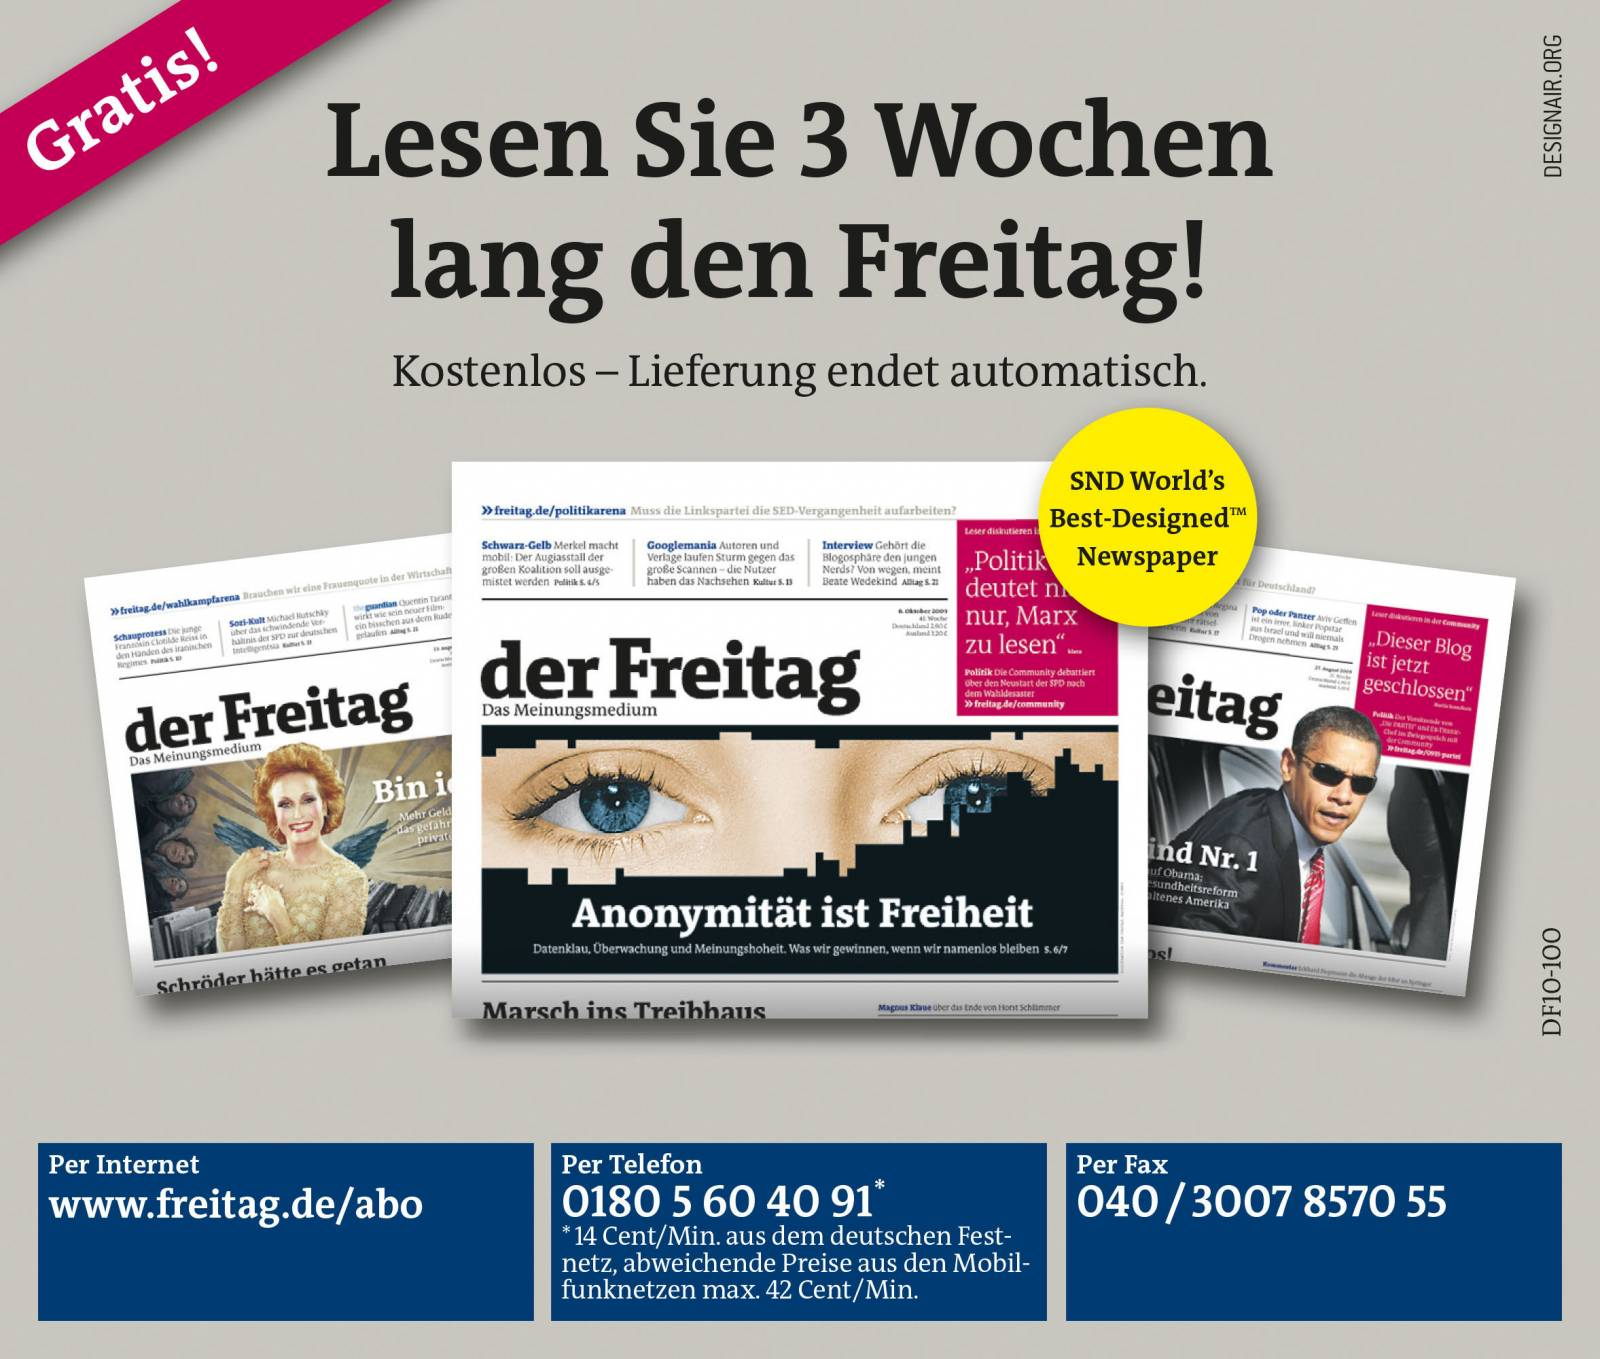 ETPTT, Der Freitag, layout, typesetting, final artwork, dtp